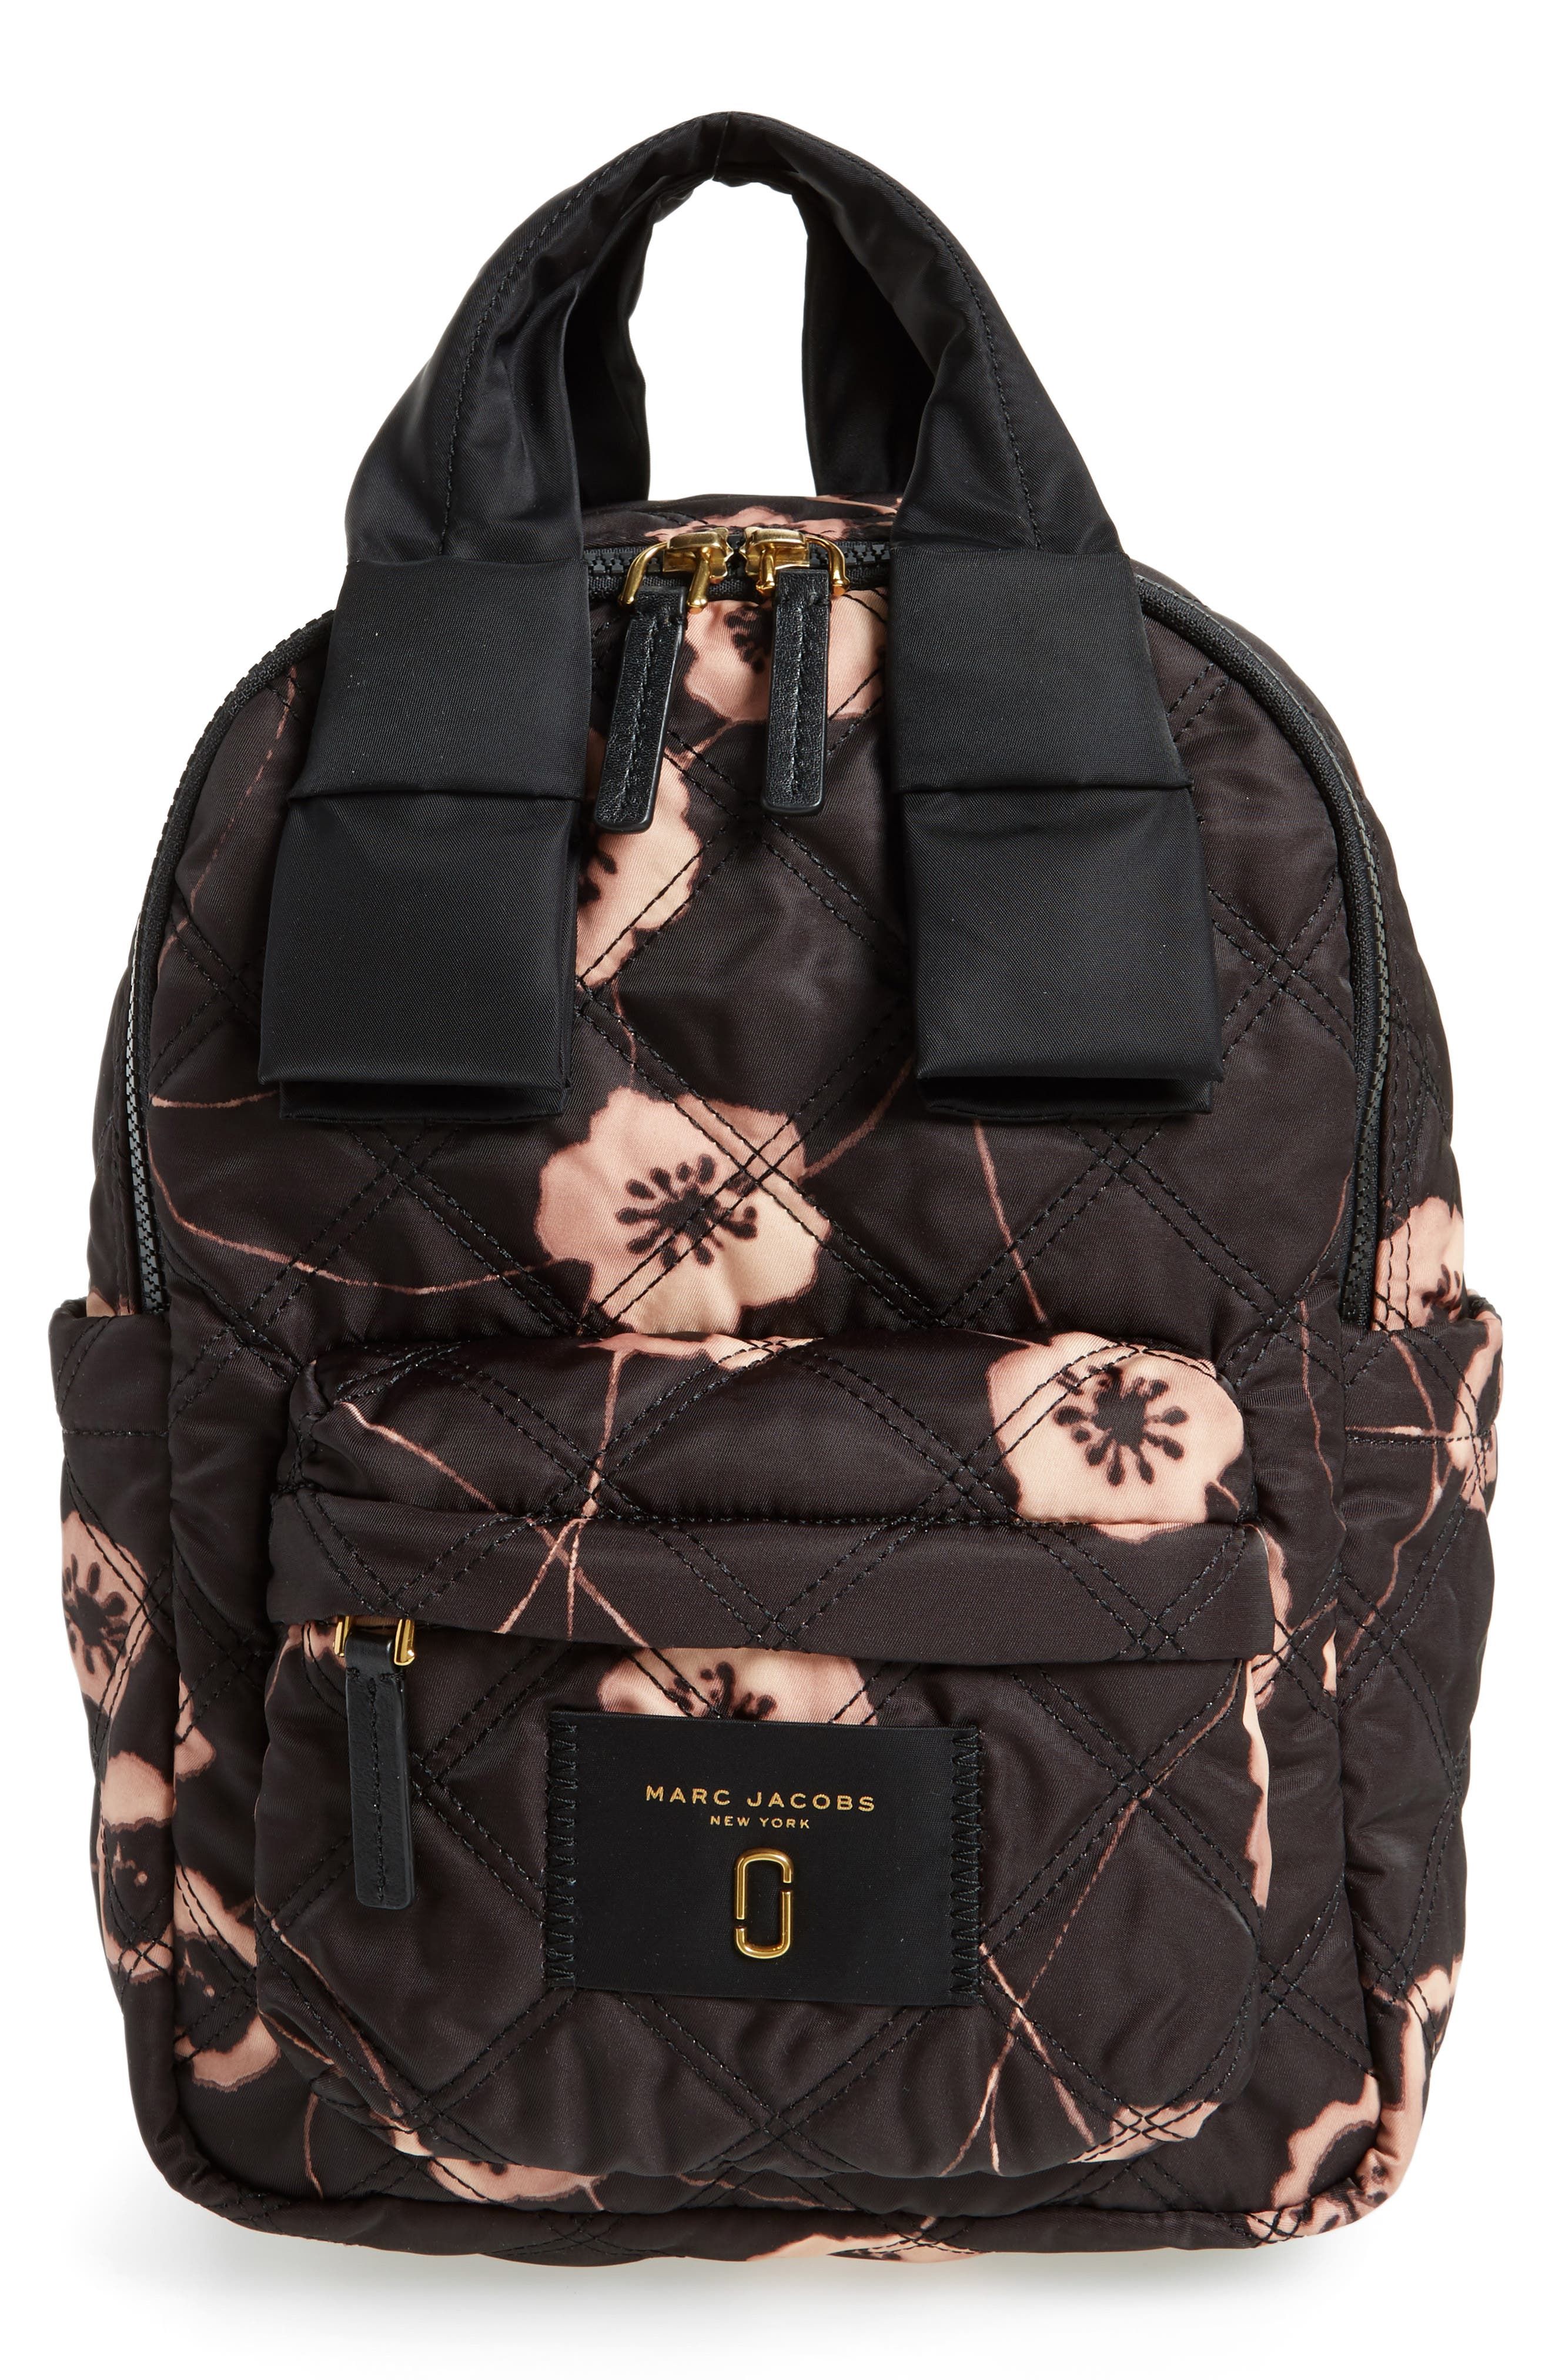 Alternate Image 1 Selected - MARC JACOBS Small Violet Vines Knot Backpack